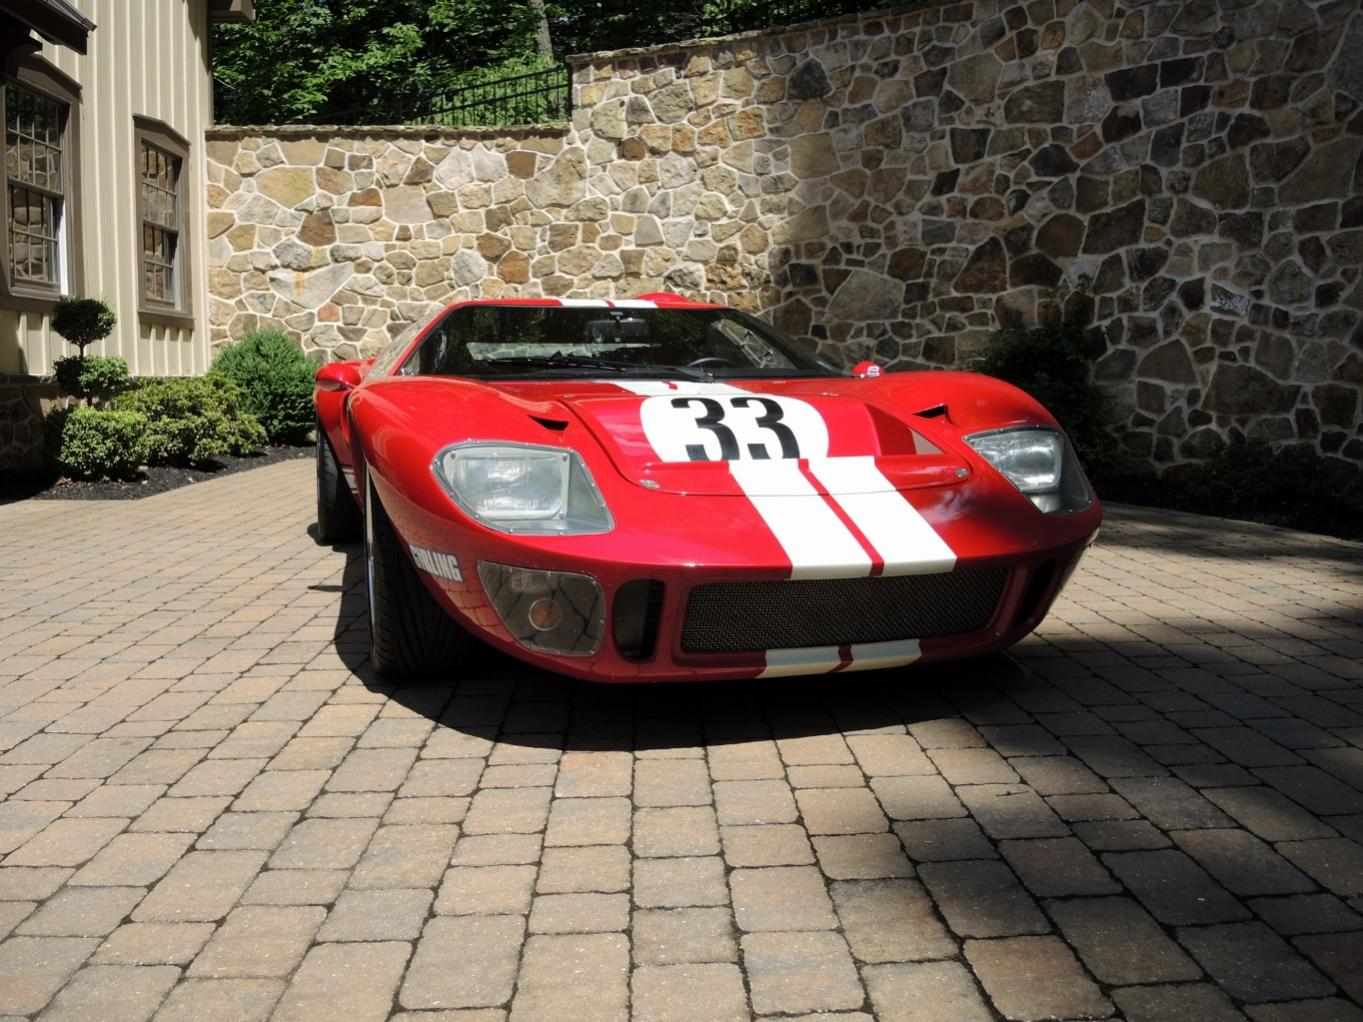 1966 CAV GT For Sale **SOLD**-front-c1-1920x1440-1364x1023-jpg